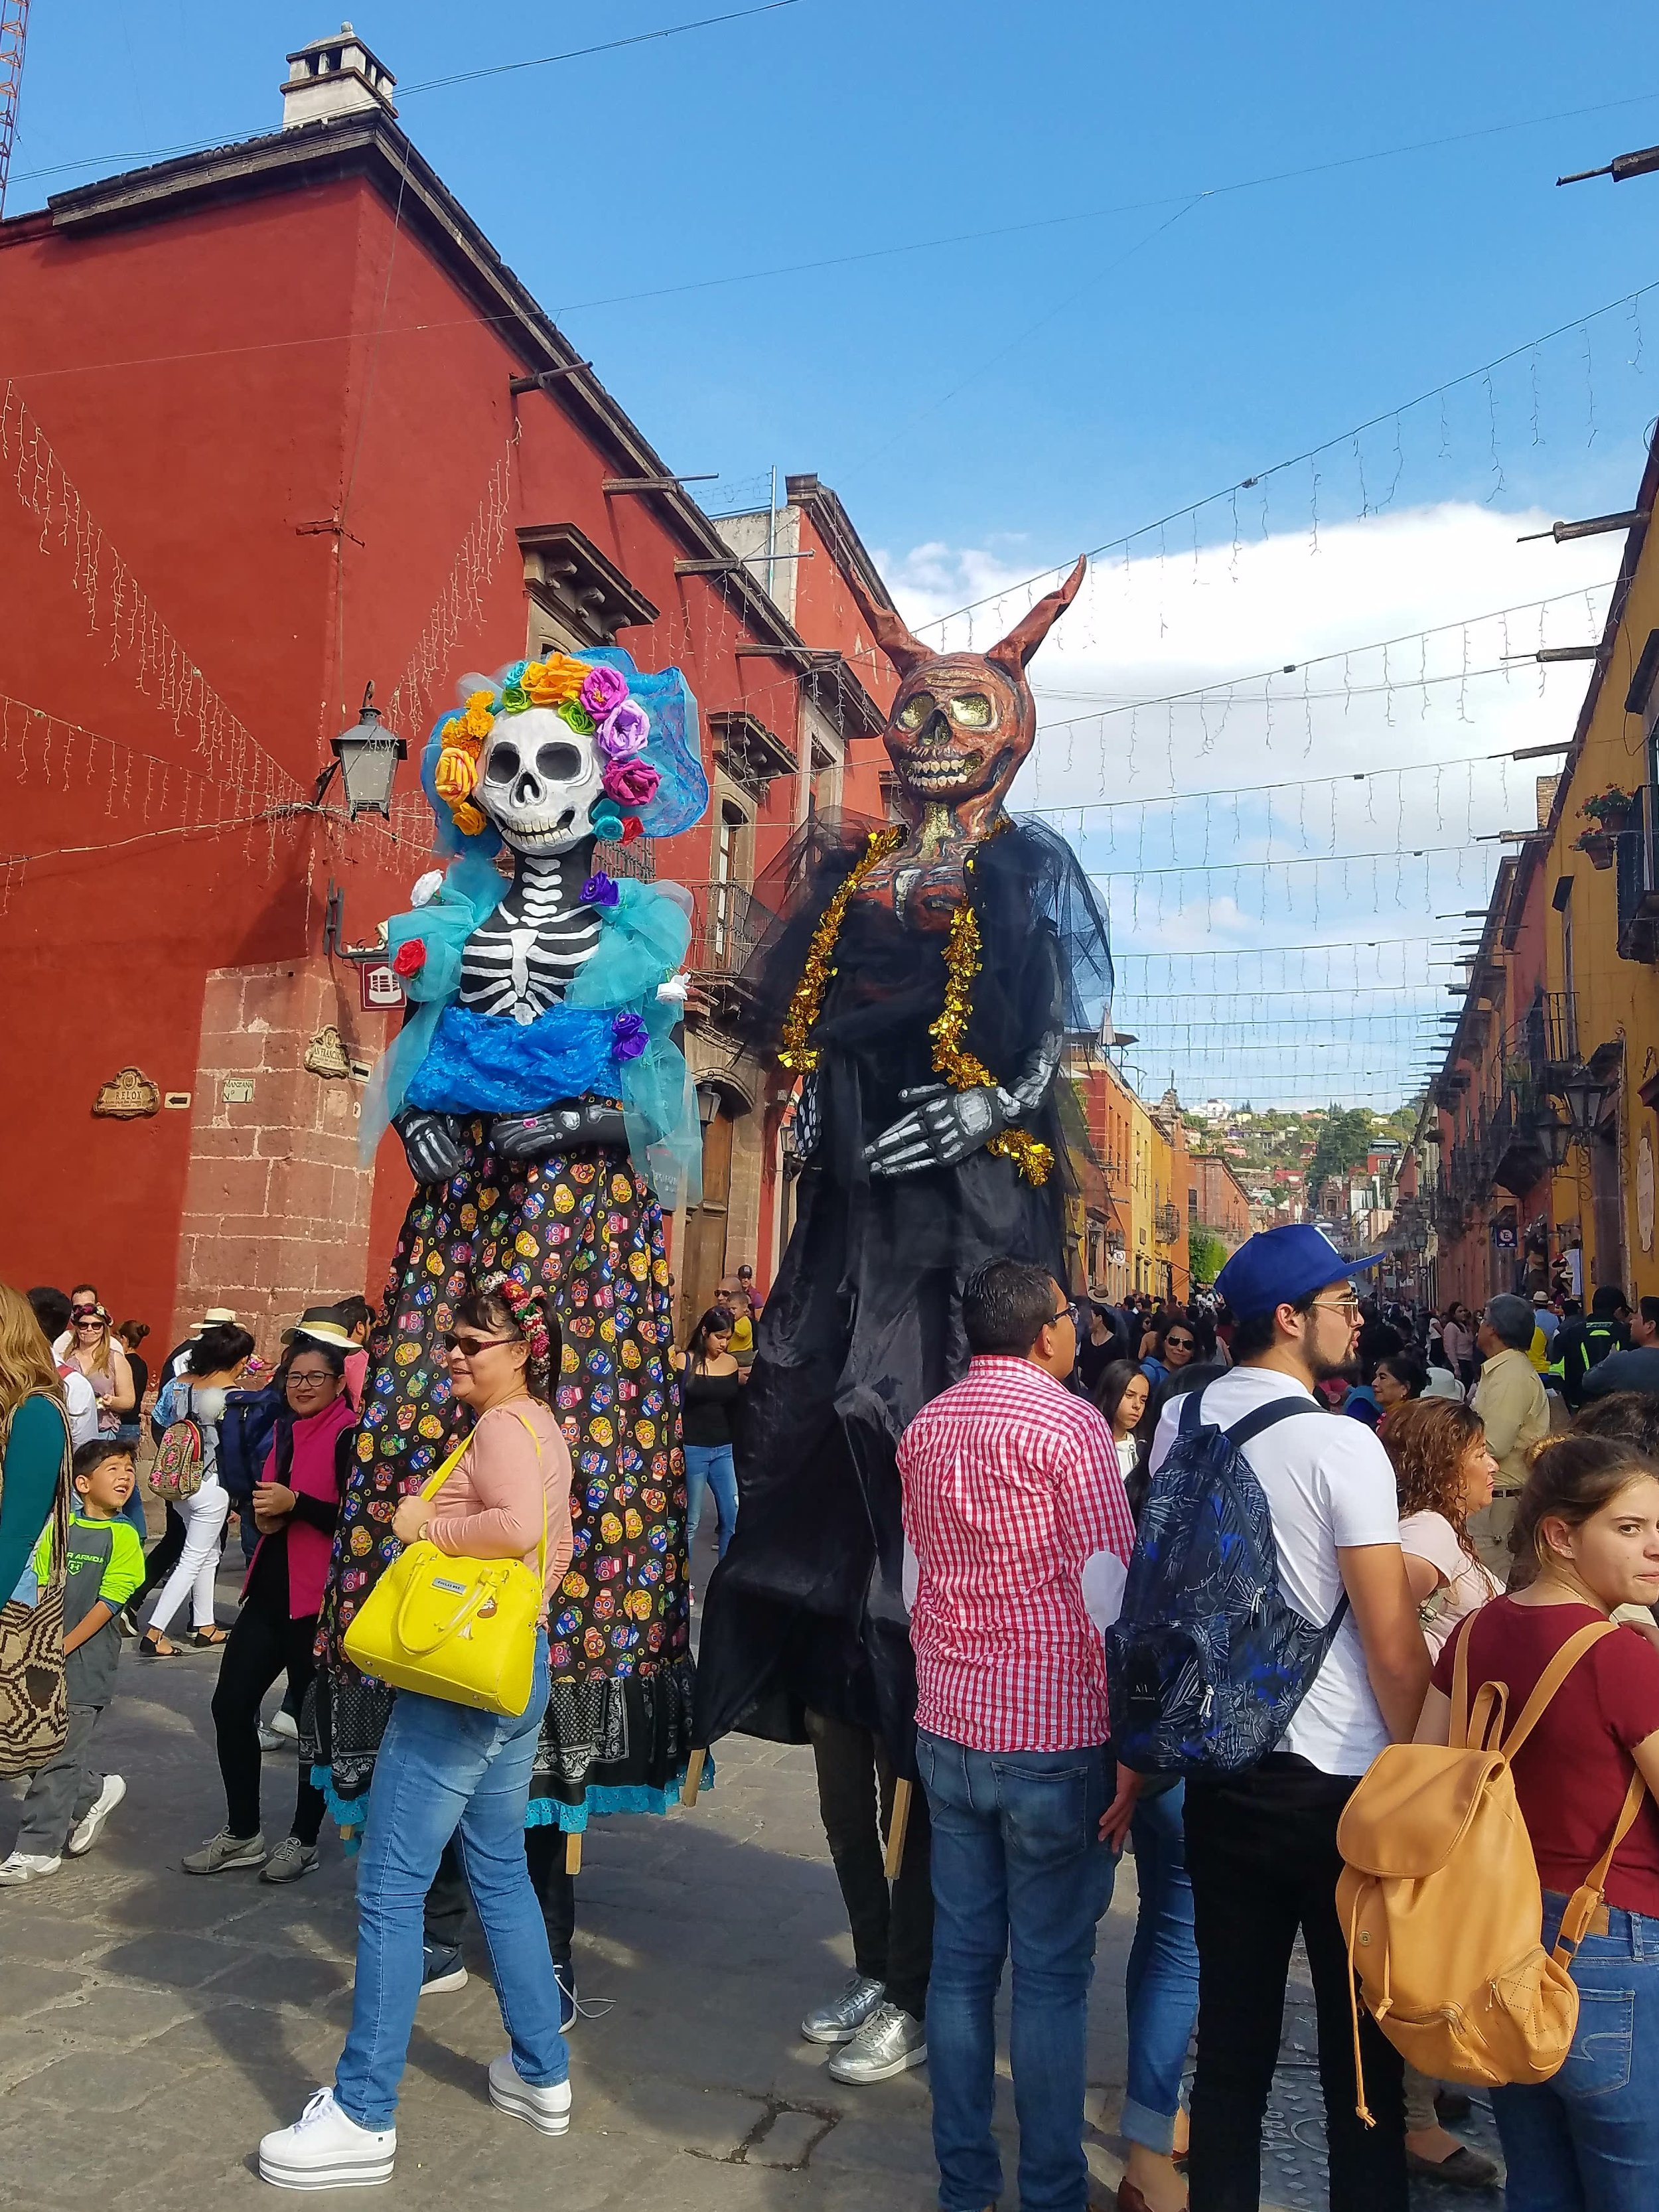 Mojigangas - Giant Street Puppets in Mexico.jpg